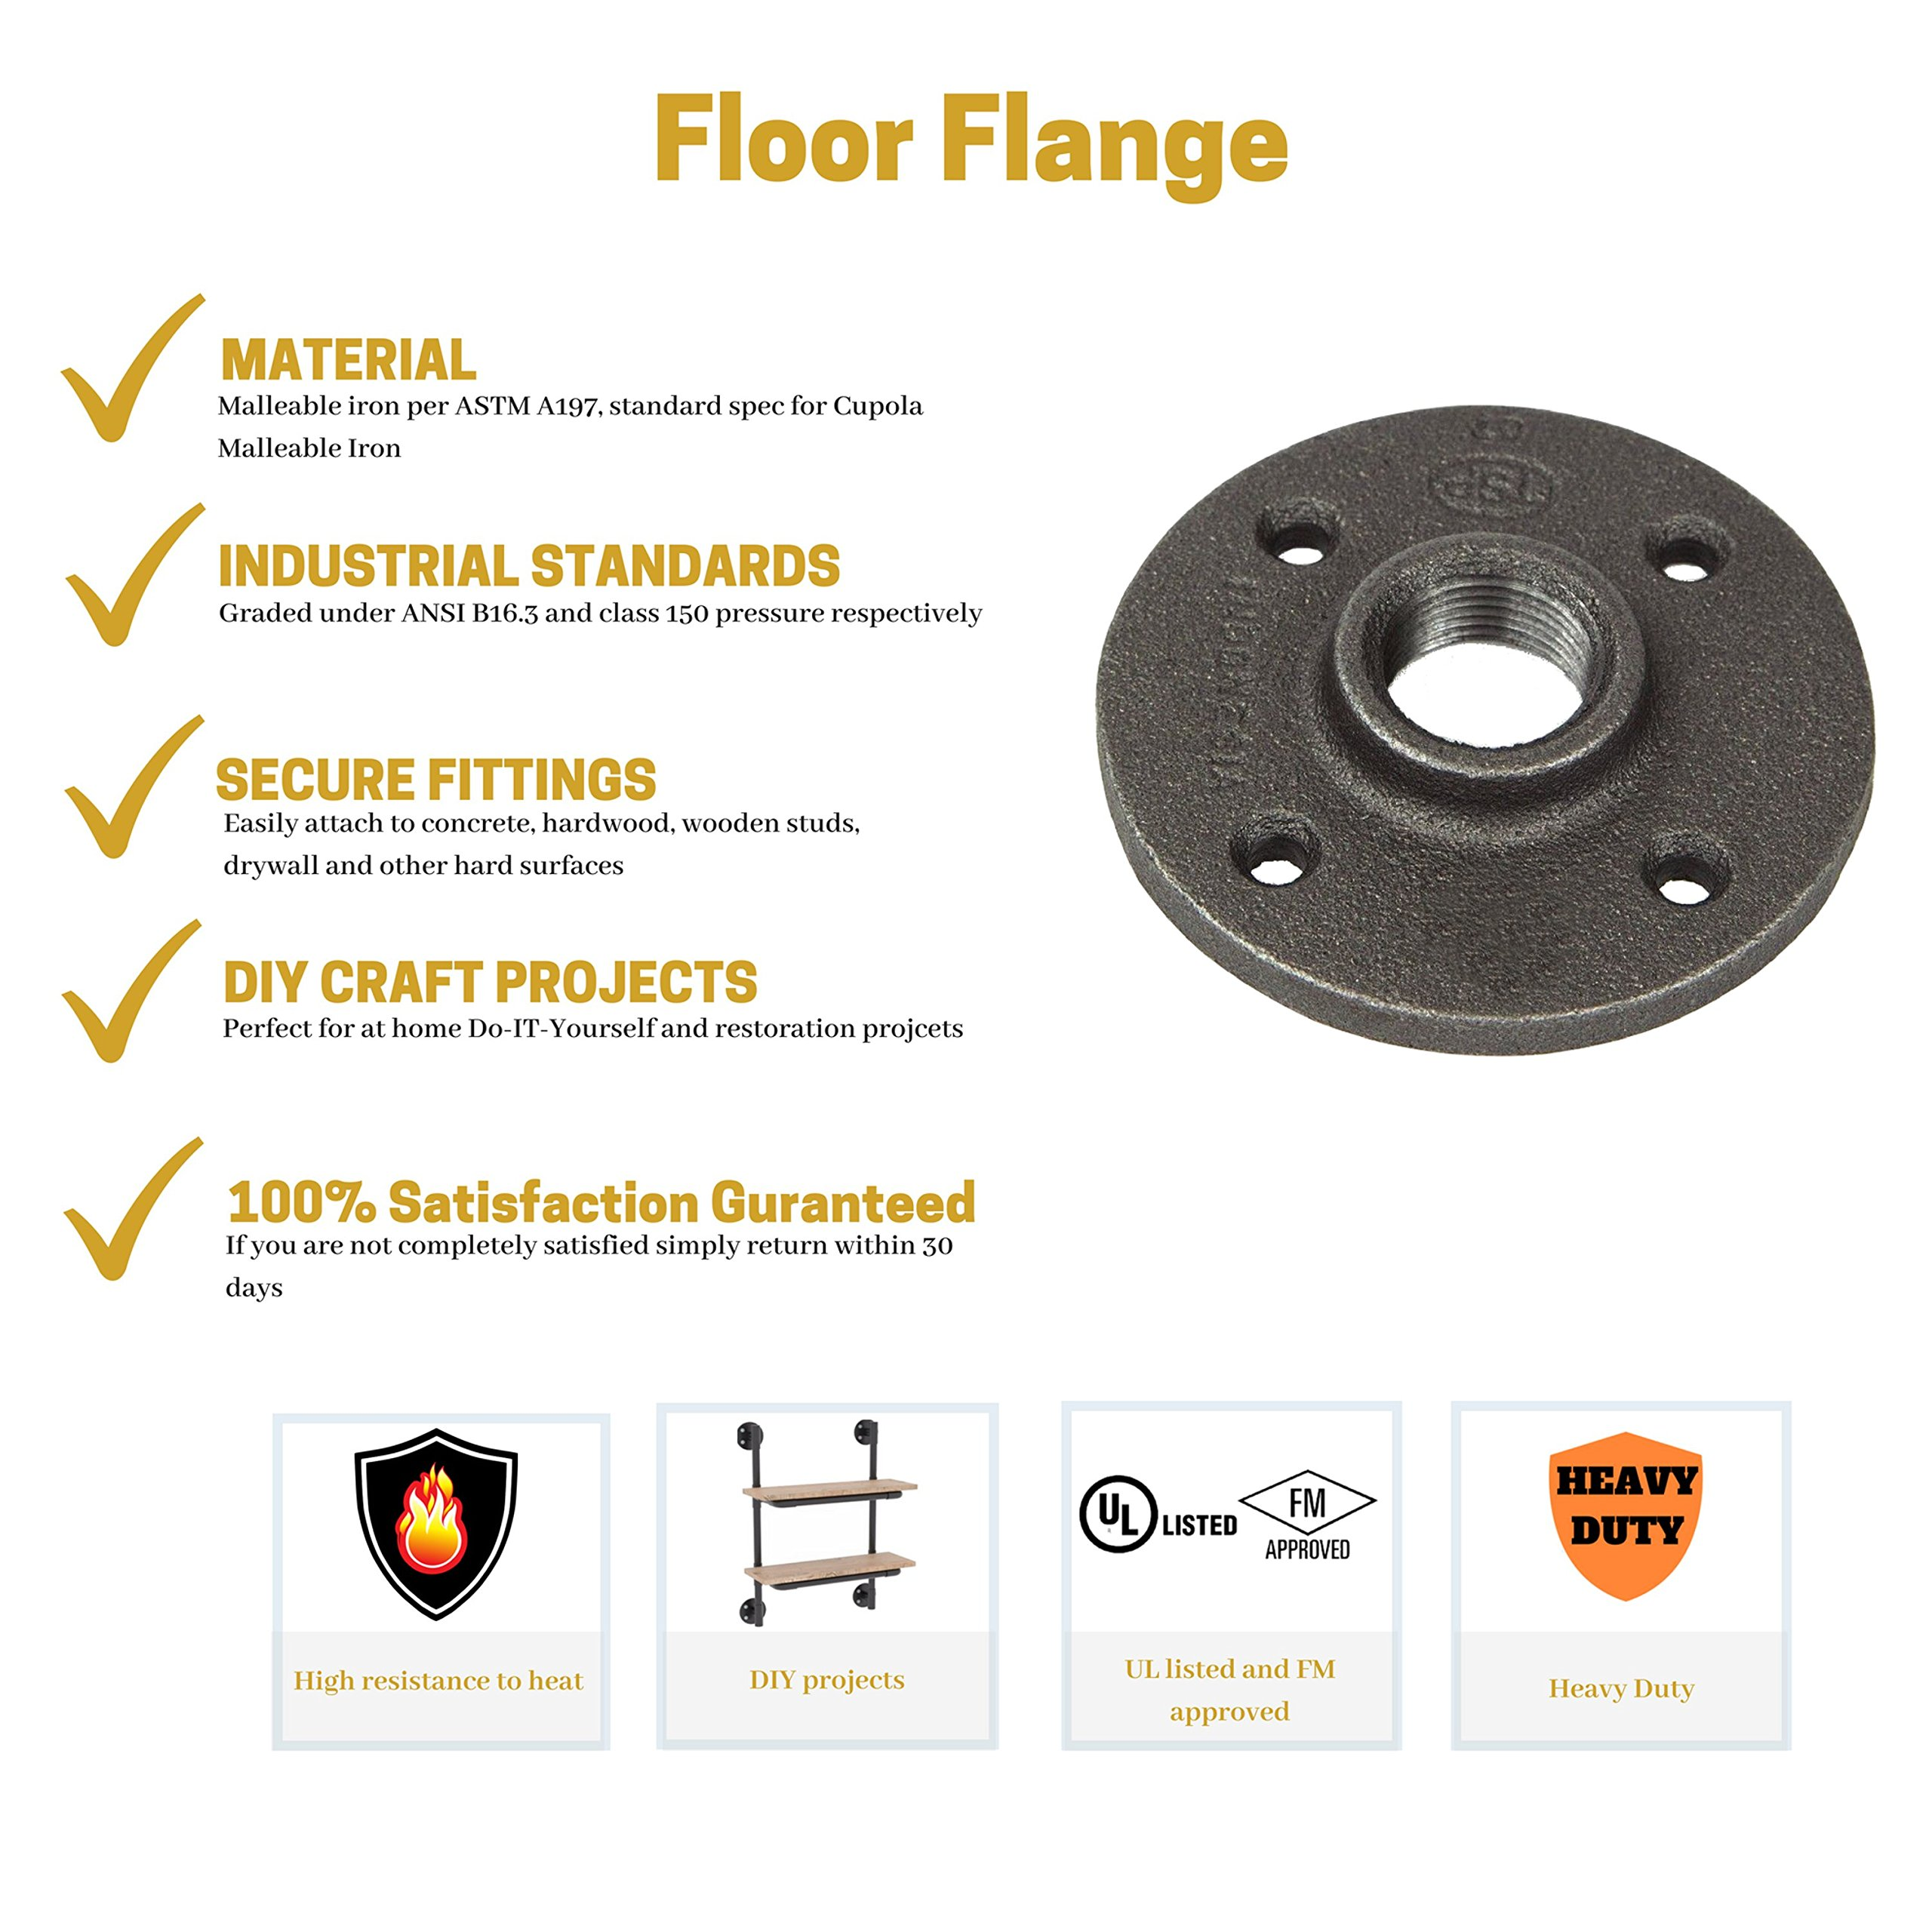 side floor flange ldr grey inch elbow cor outlet customer reviews fitting industrial pcr d fittings steel rated in pipes helpful way best pipe